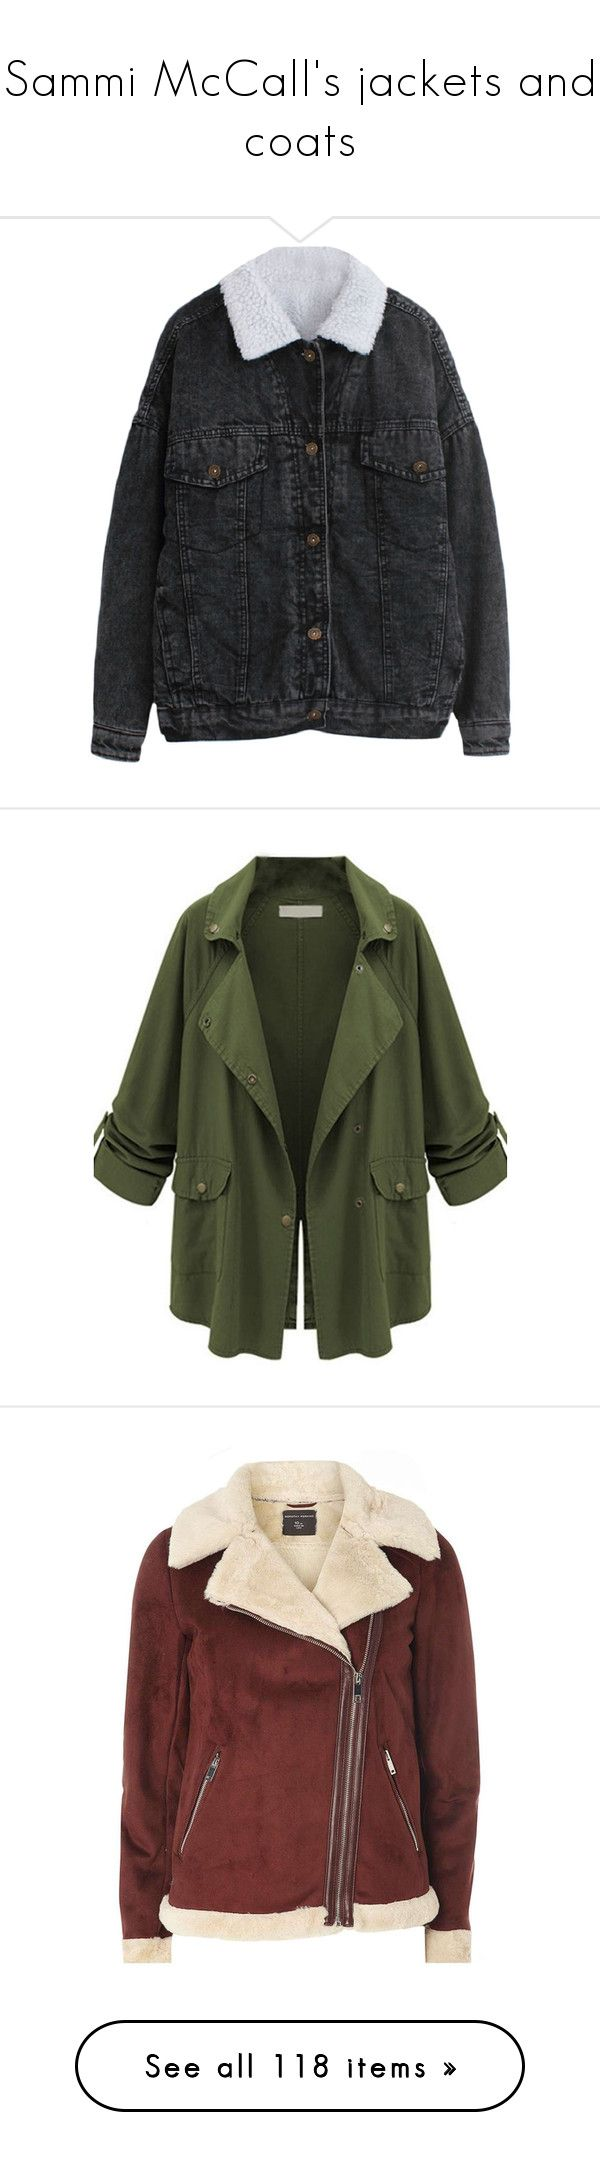 """""""Sammi McCall's jackets and coats"""" by samtiritilli ❤ liked on Polyvore featuring men's fashion, men's clothing, men's outerwear, men's jackets, smokey green, mens polyester bomber jacket, burberry mens jacket, mens waterproof jacket, mens green jacket and mens green bomber jacket"""